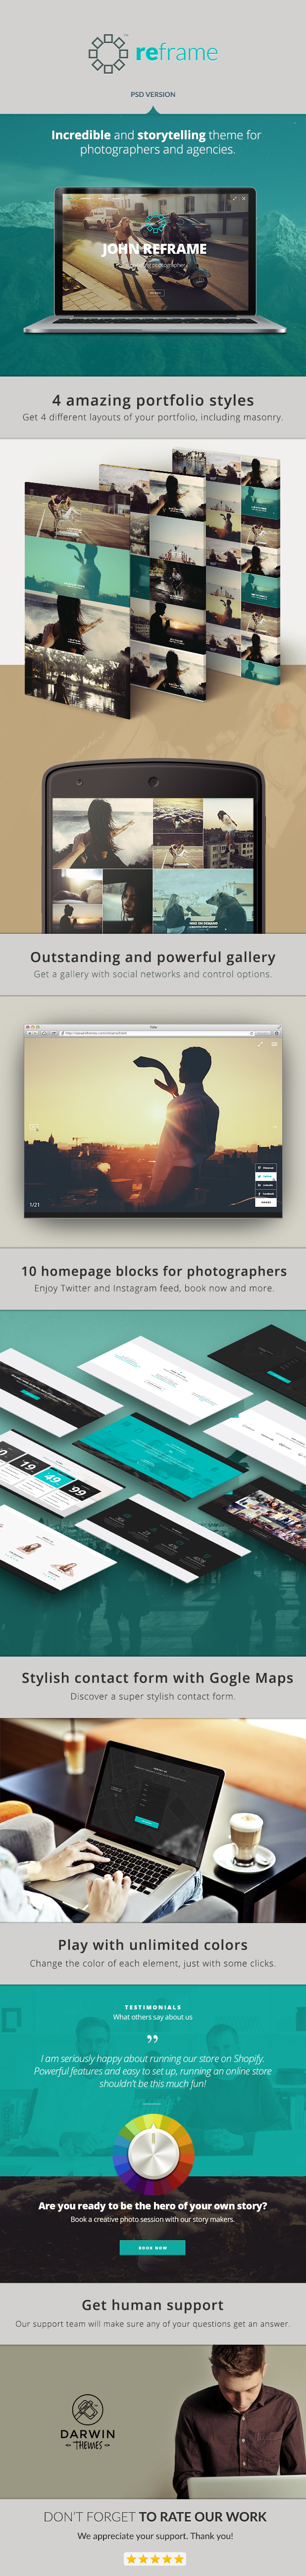 ReFrame Photo - Photography PSD Template - 4